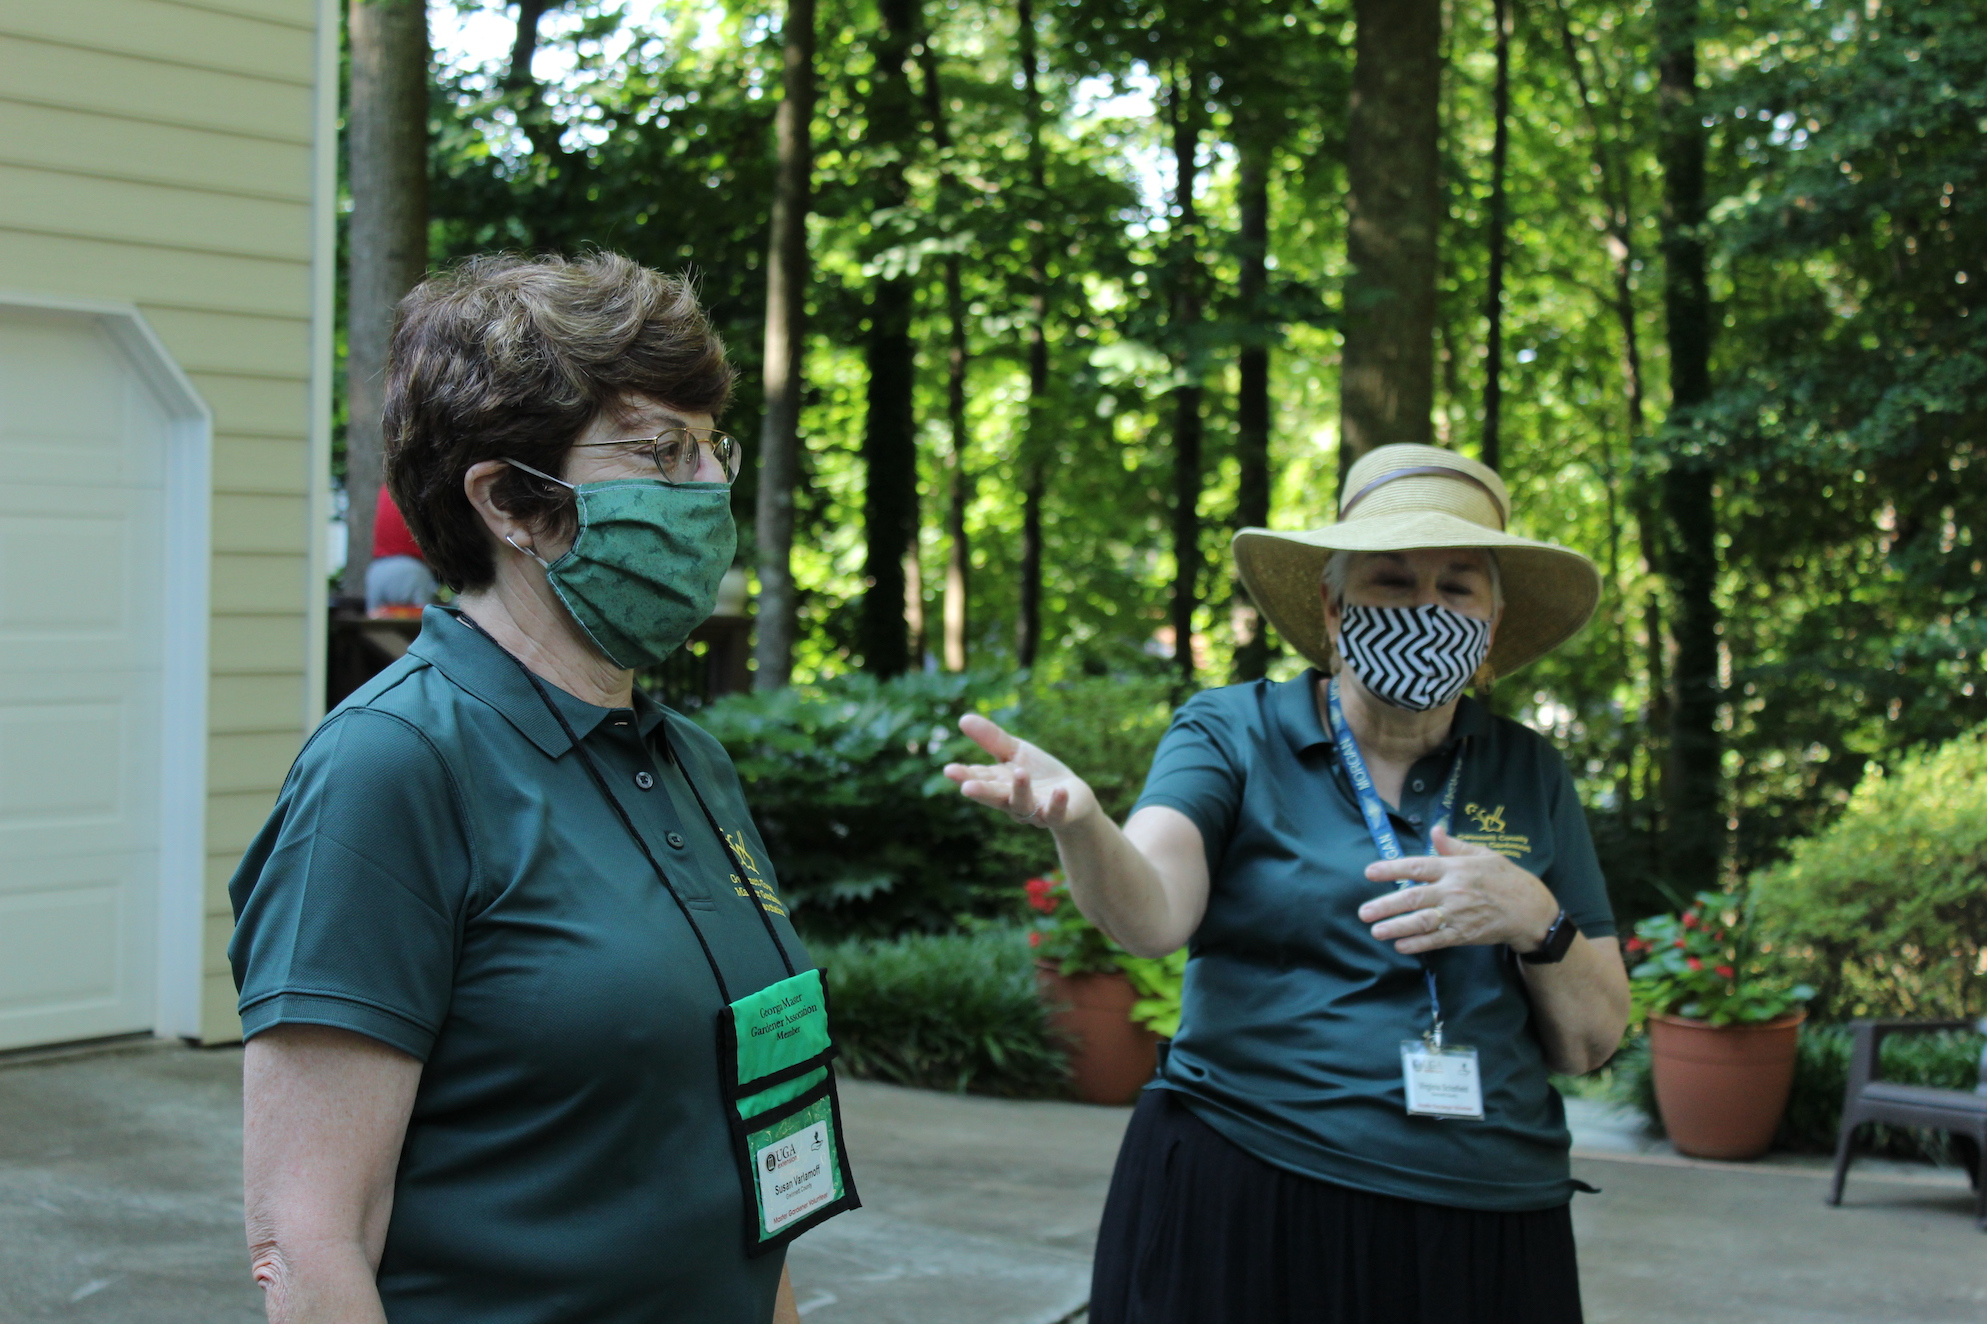 Varlamoff Garden: Susan (l) is masked, distanced and ready for the tour